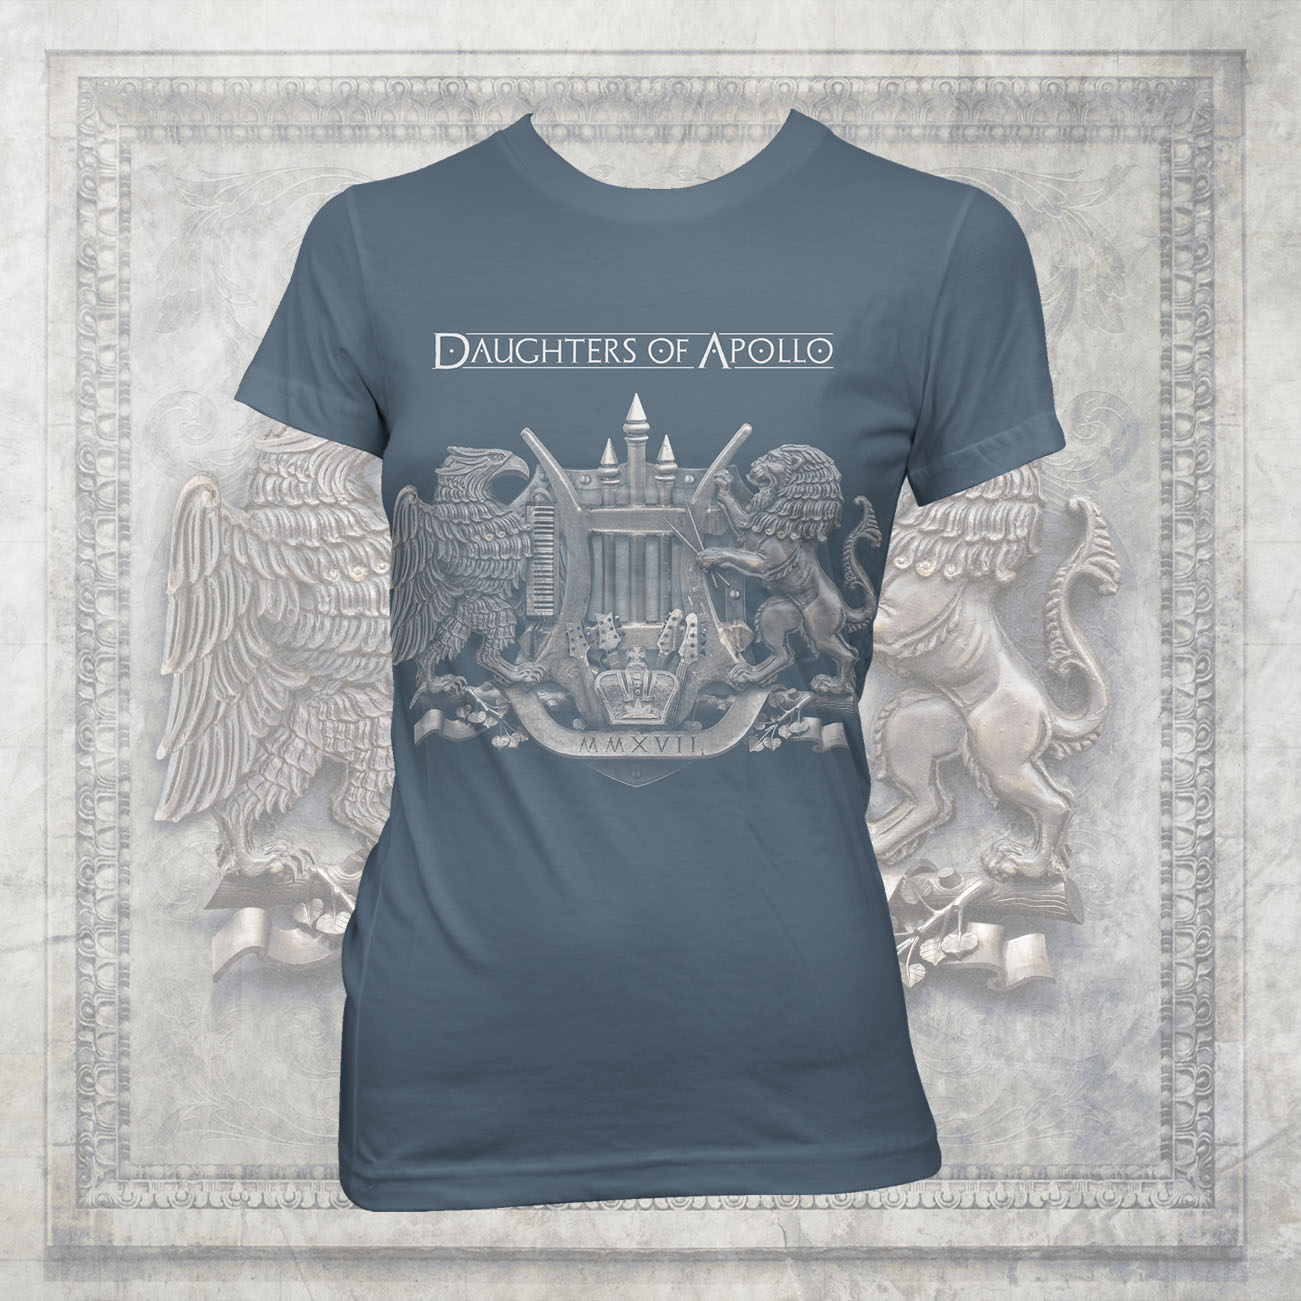 Sons of Apollo - 'Daughters Crest' Fitted T-Shirt - Sons of Apollo